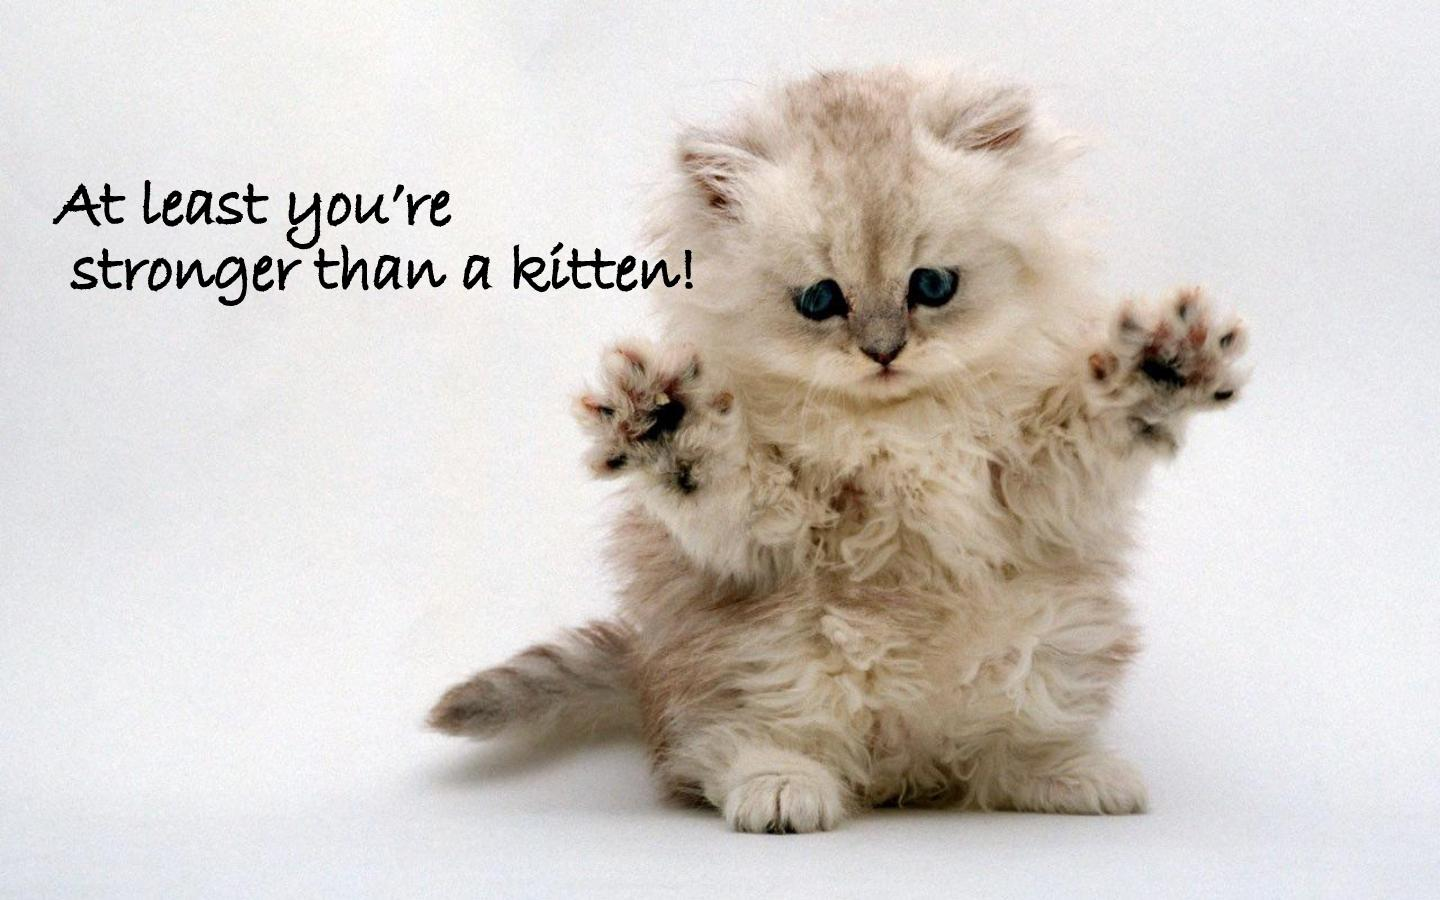 Kitten Sayings and Quotes ~ Best Quotes and Sayings